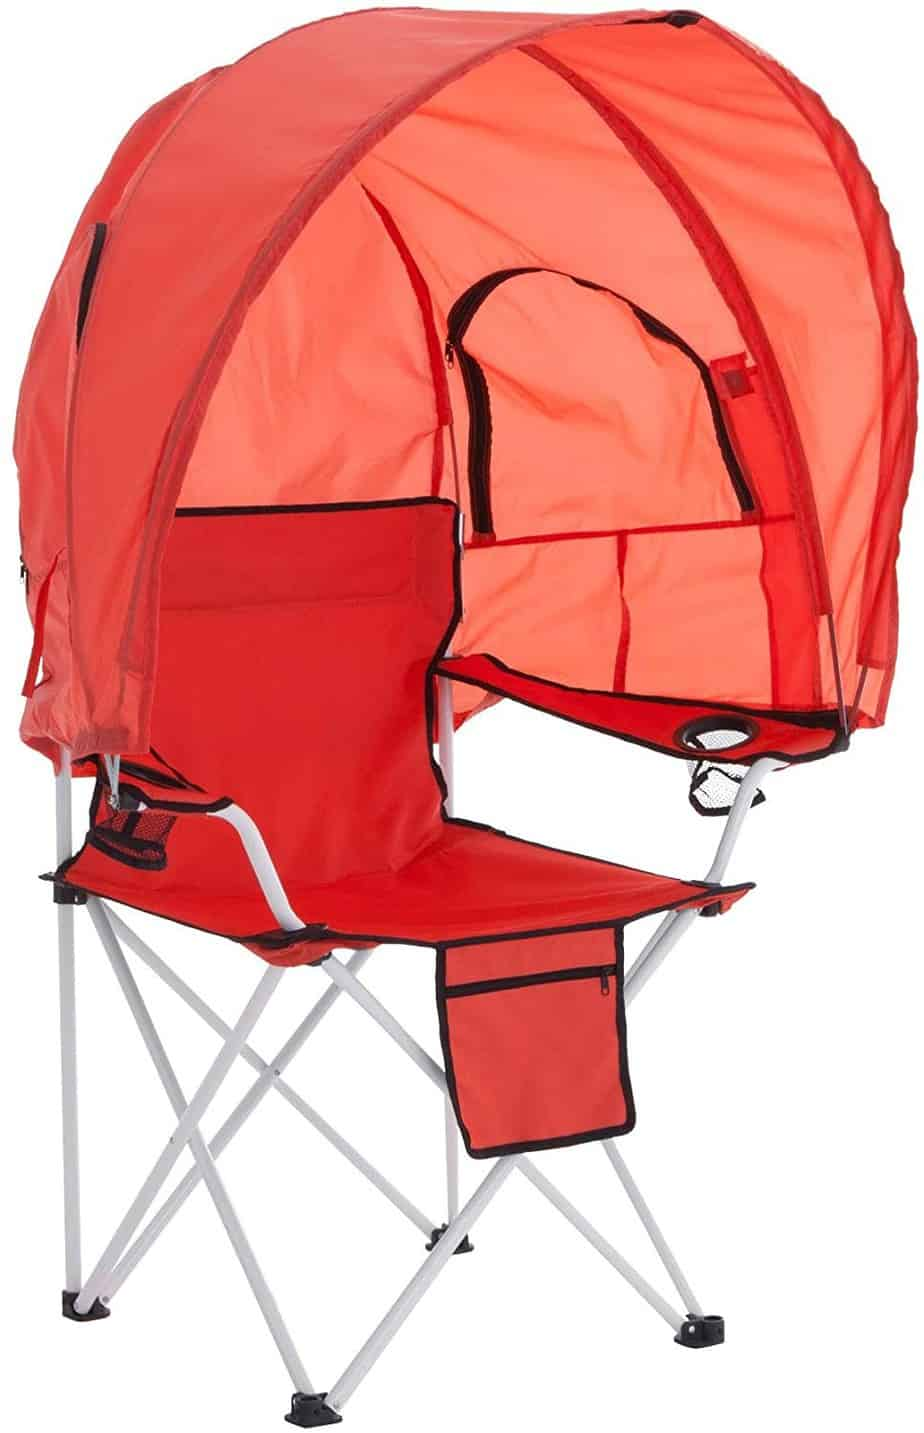 10. BrylaneHome Camp Chair with Canopy Shade